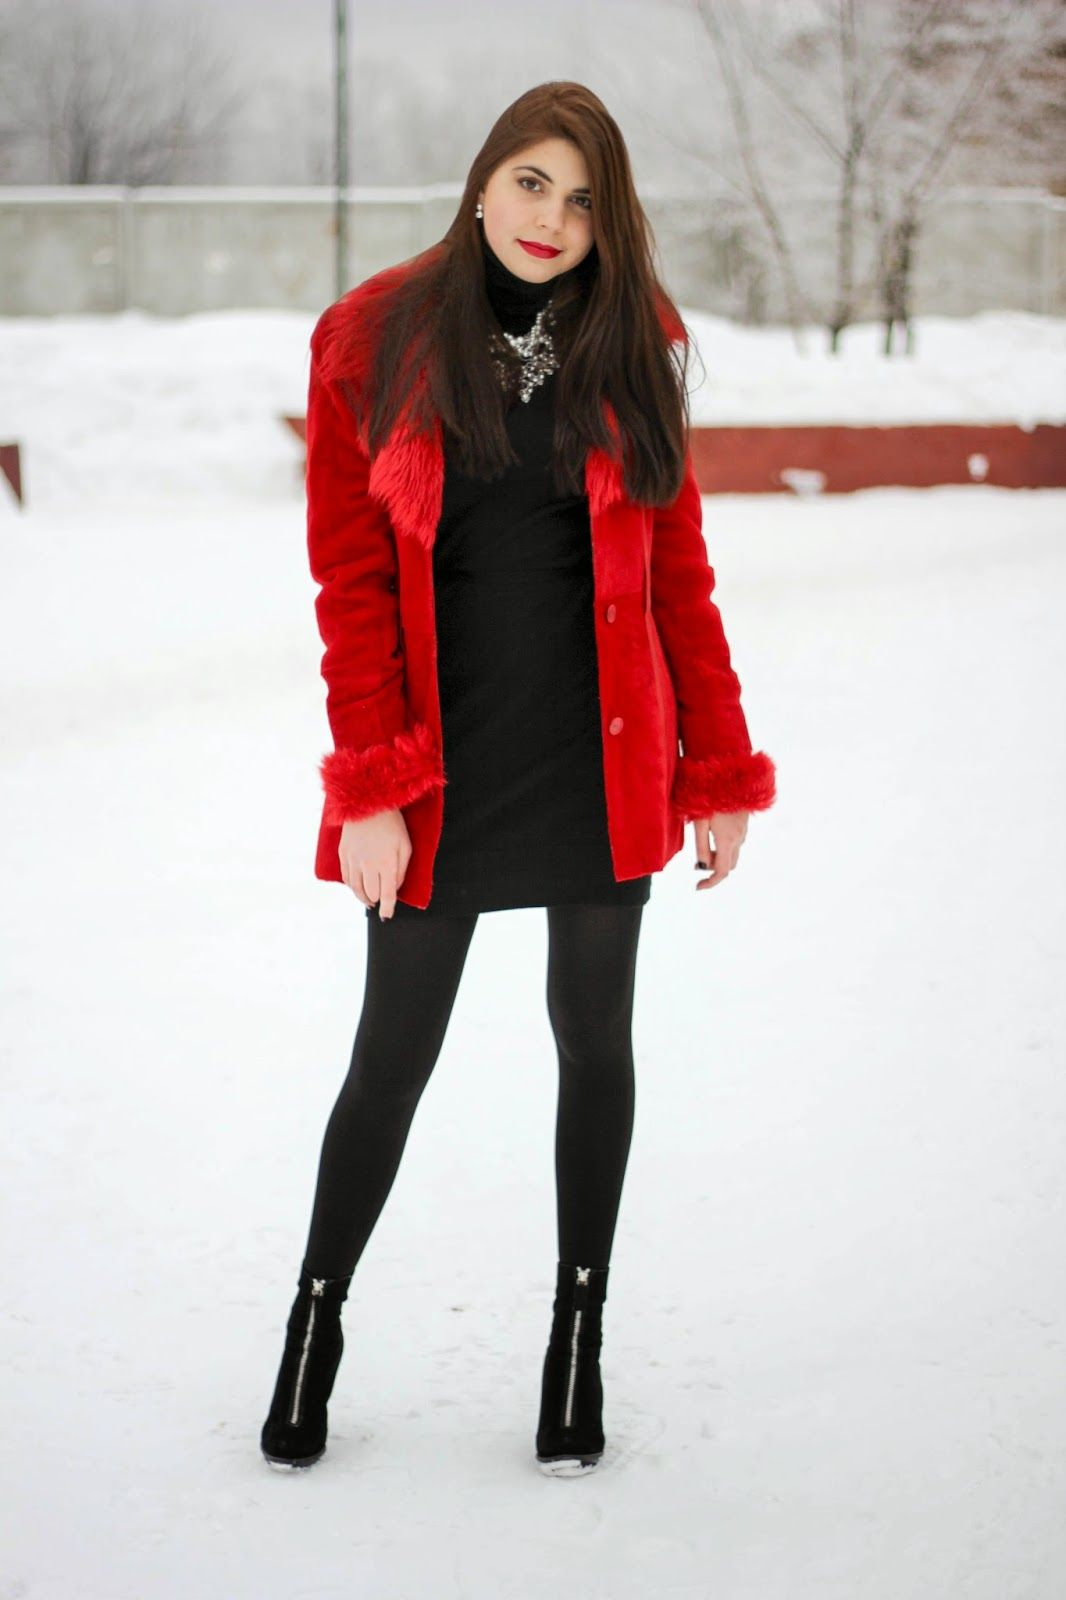 Women's Red Coat, Black Sweater Dress, Black Suede Ankle Boots ...